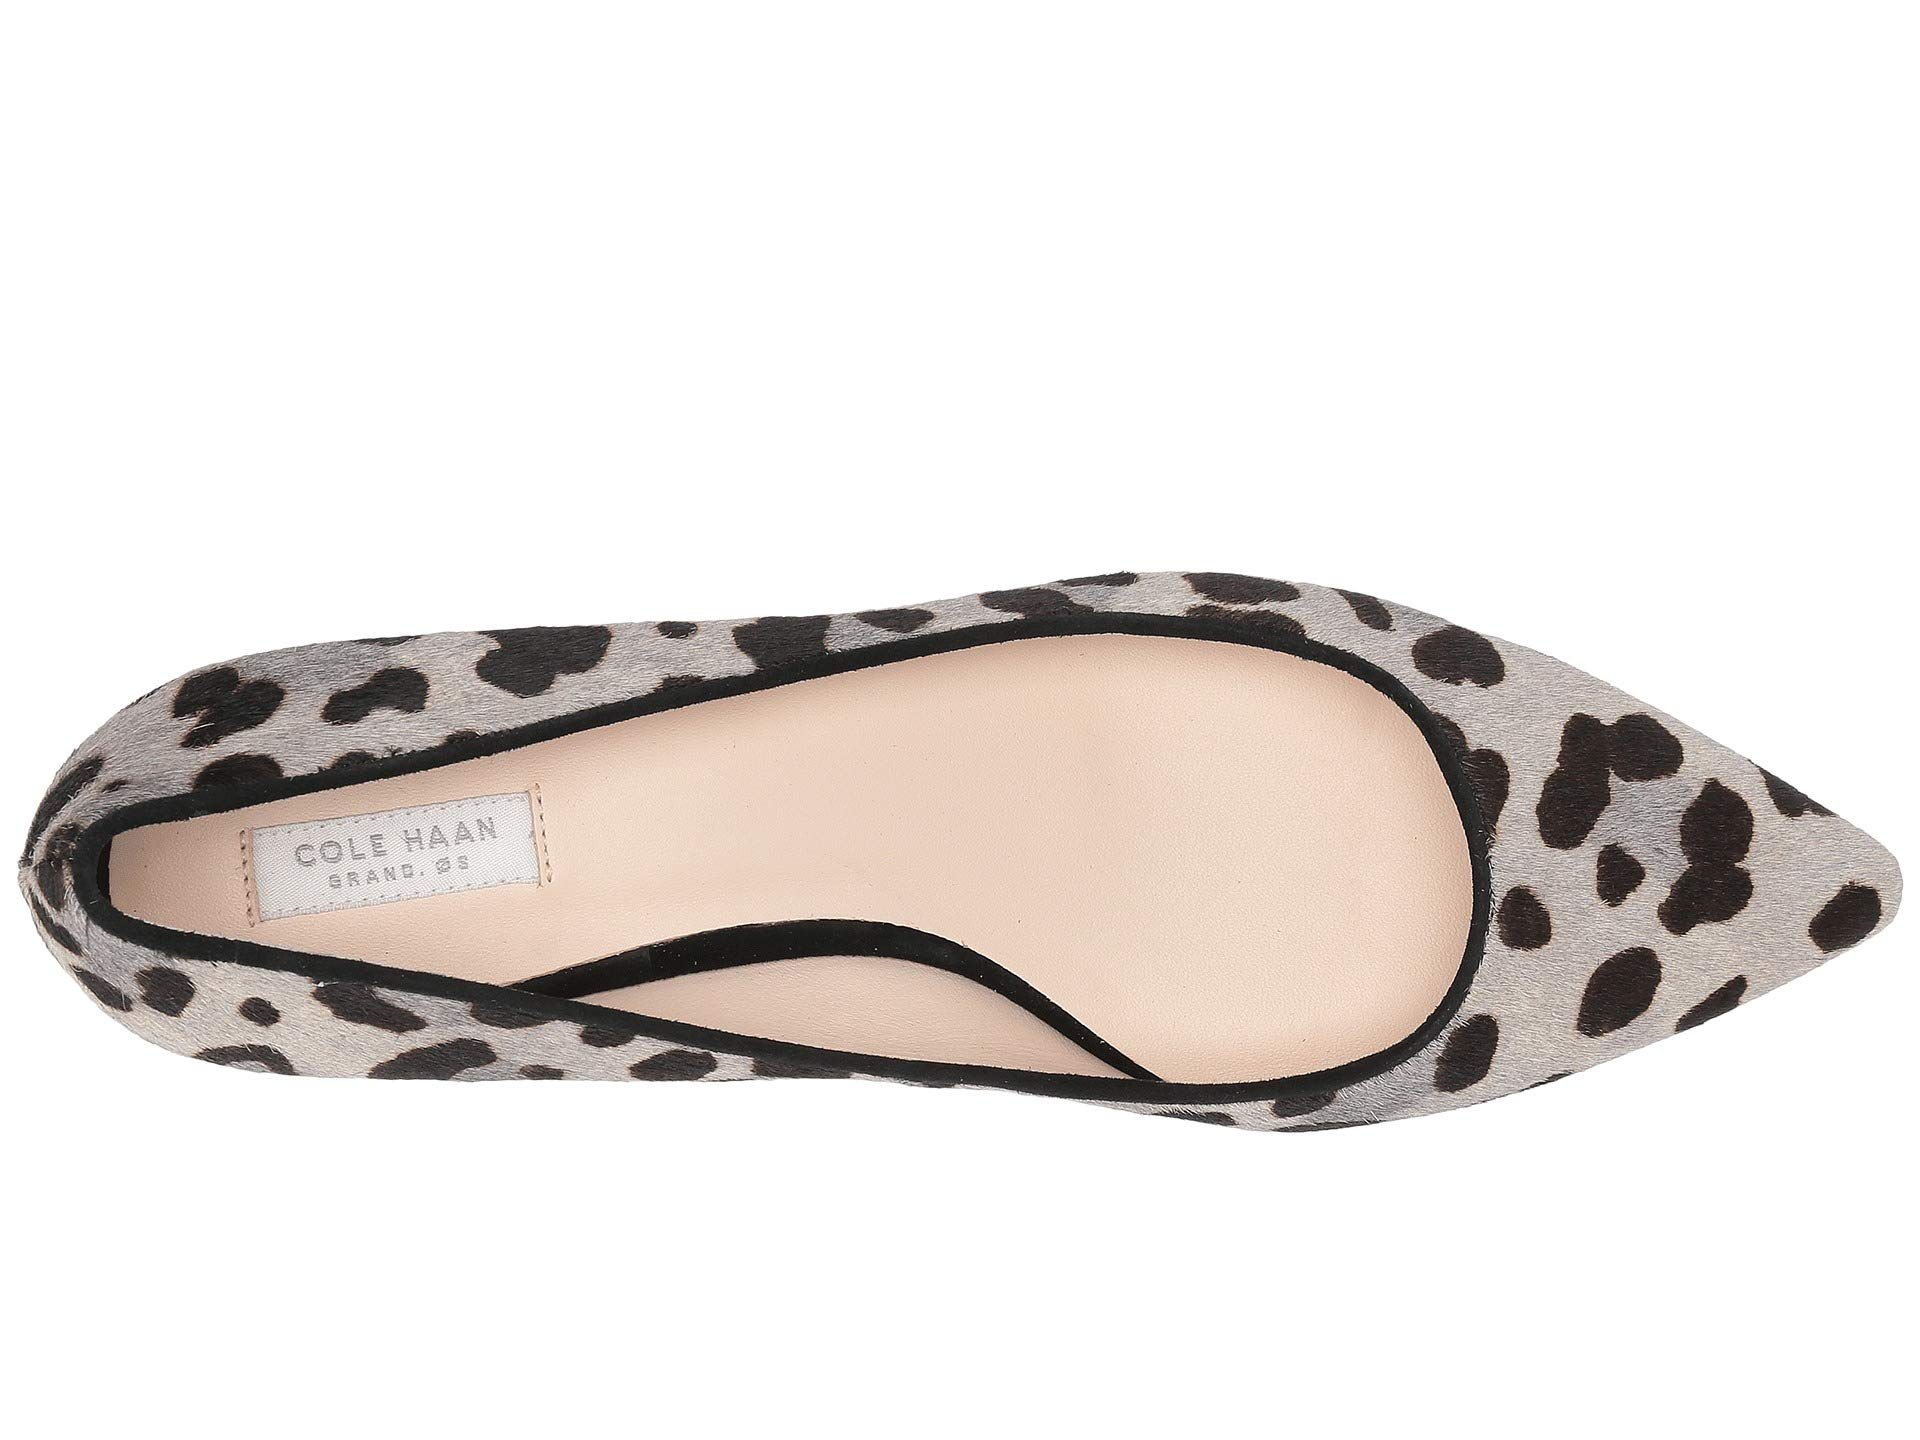 os Haan Vesta Mercer Ocelot Print Pump G Haircalf Cole 45mm ZqRWw6fqc